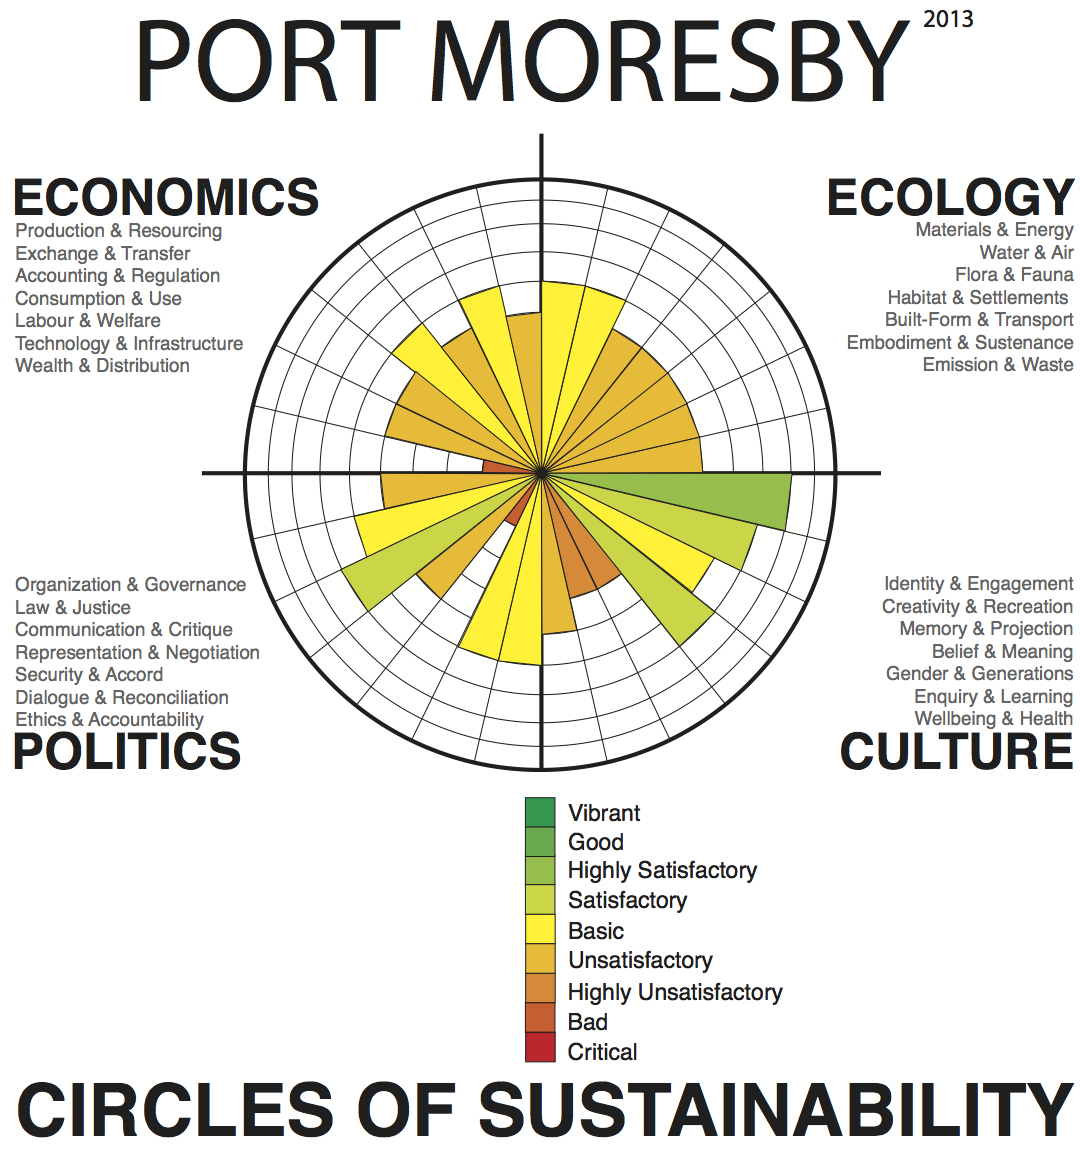 Sea Level Rise Chart: Port Moresby - Wikipedia,Chart